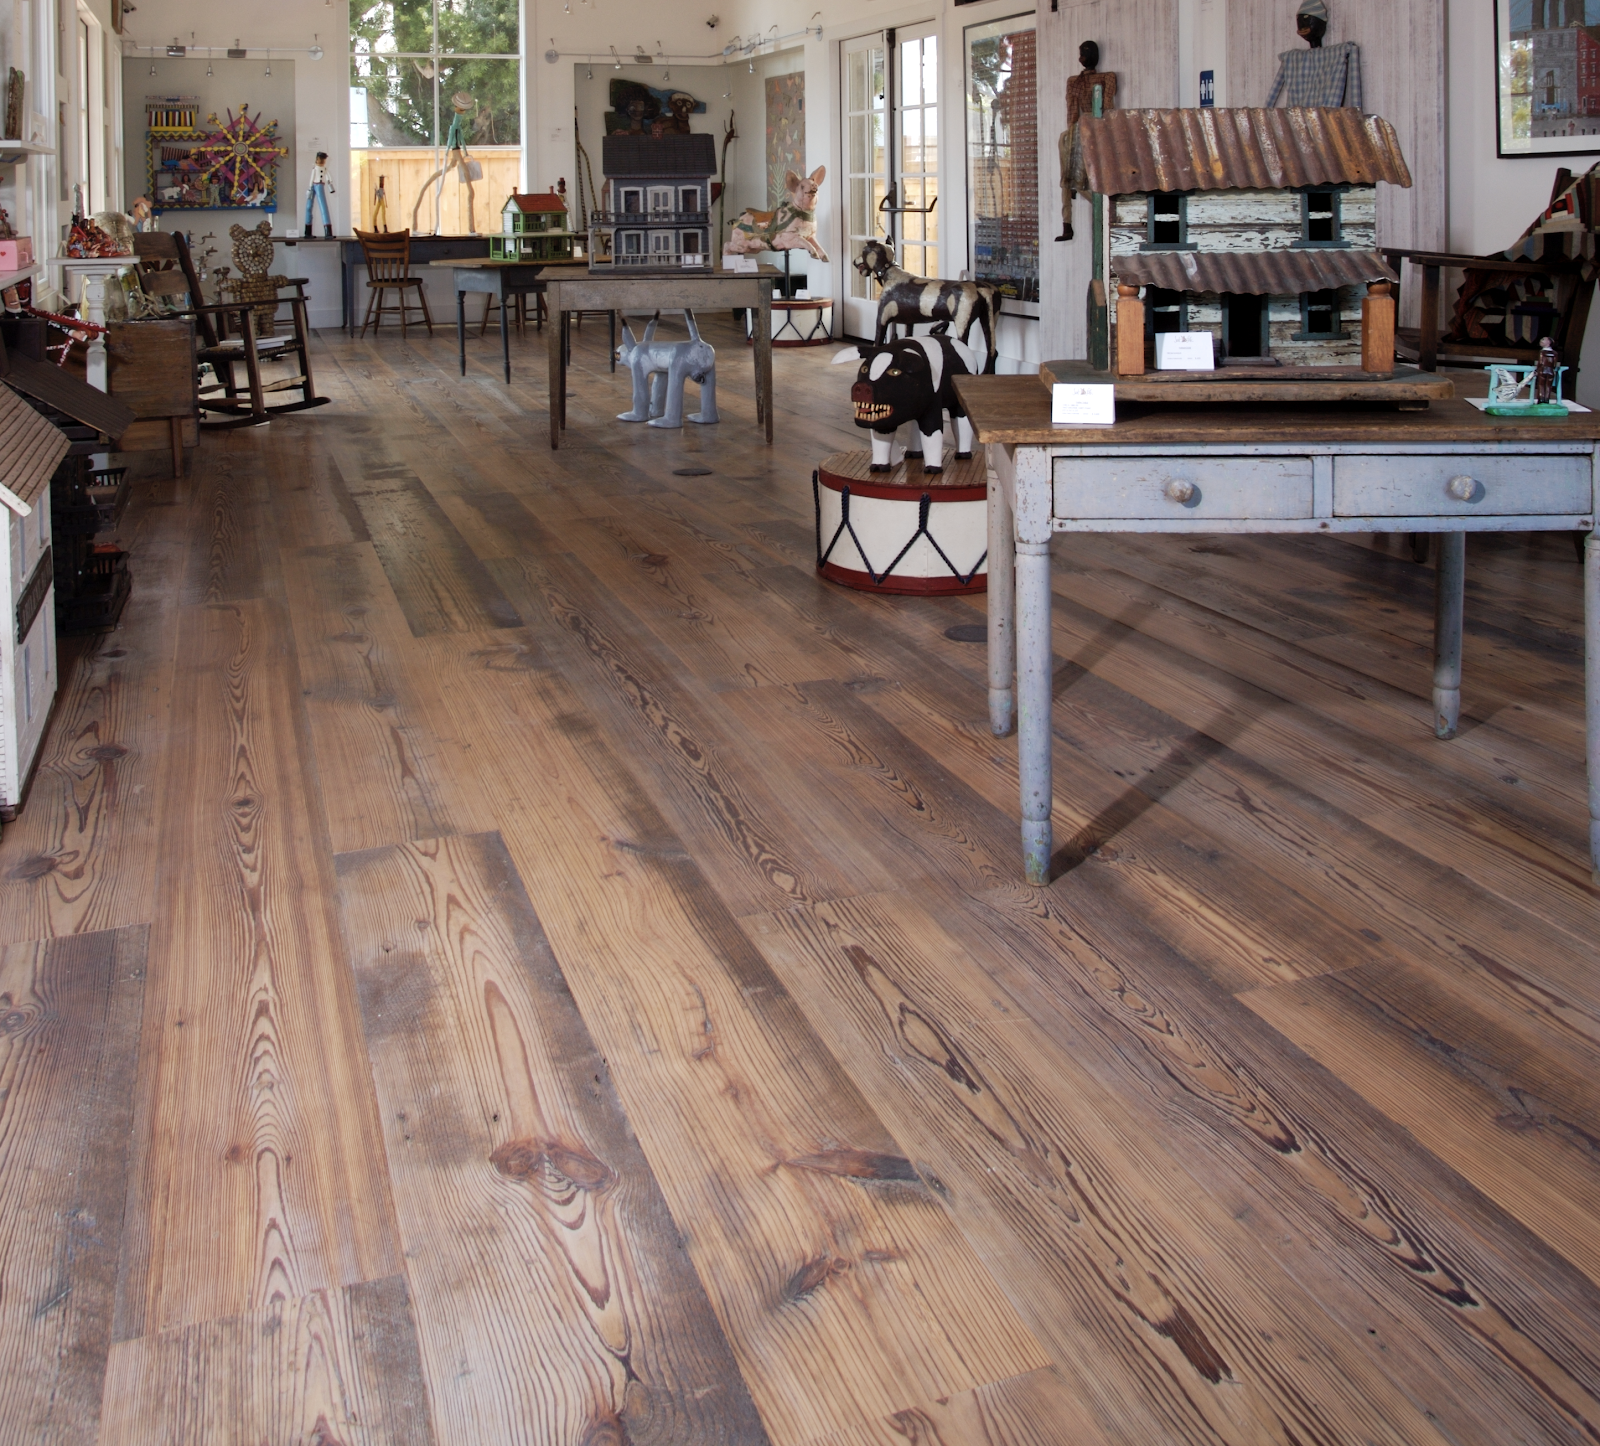 Distressed Hardwood Flooring 9 Design